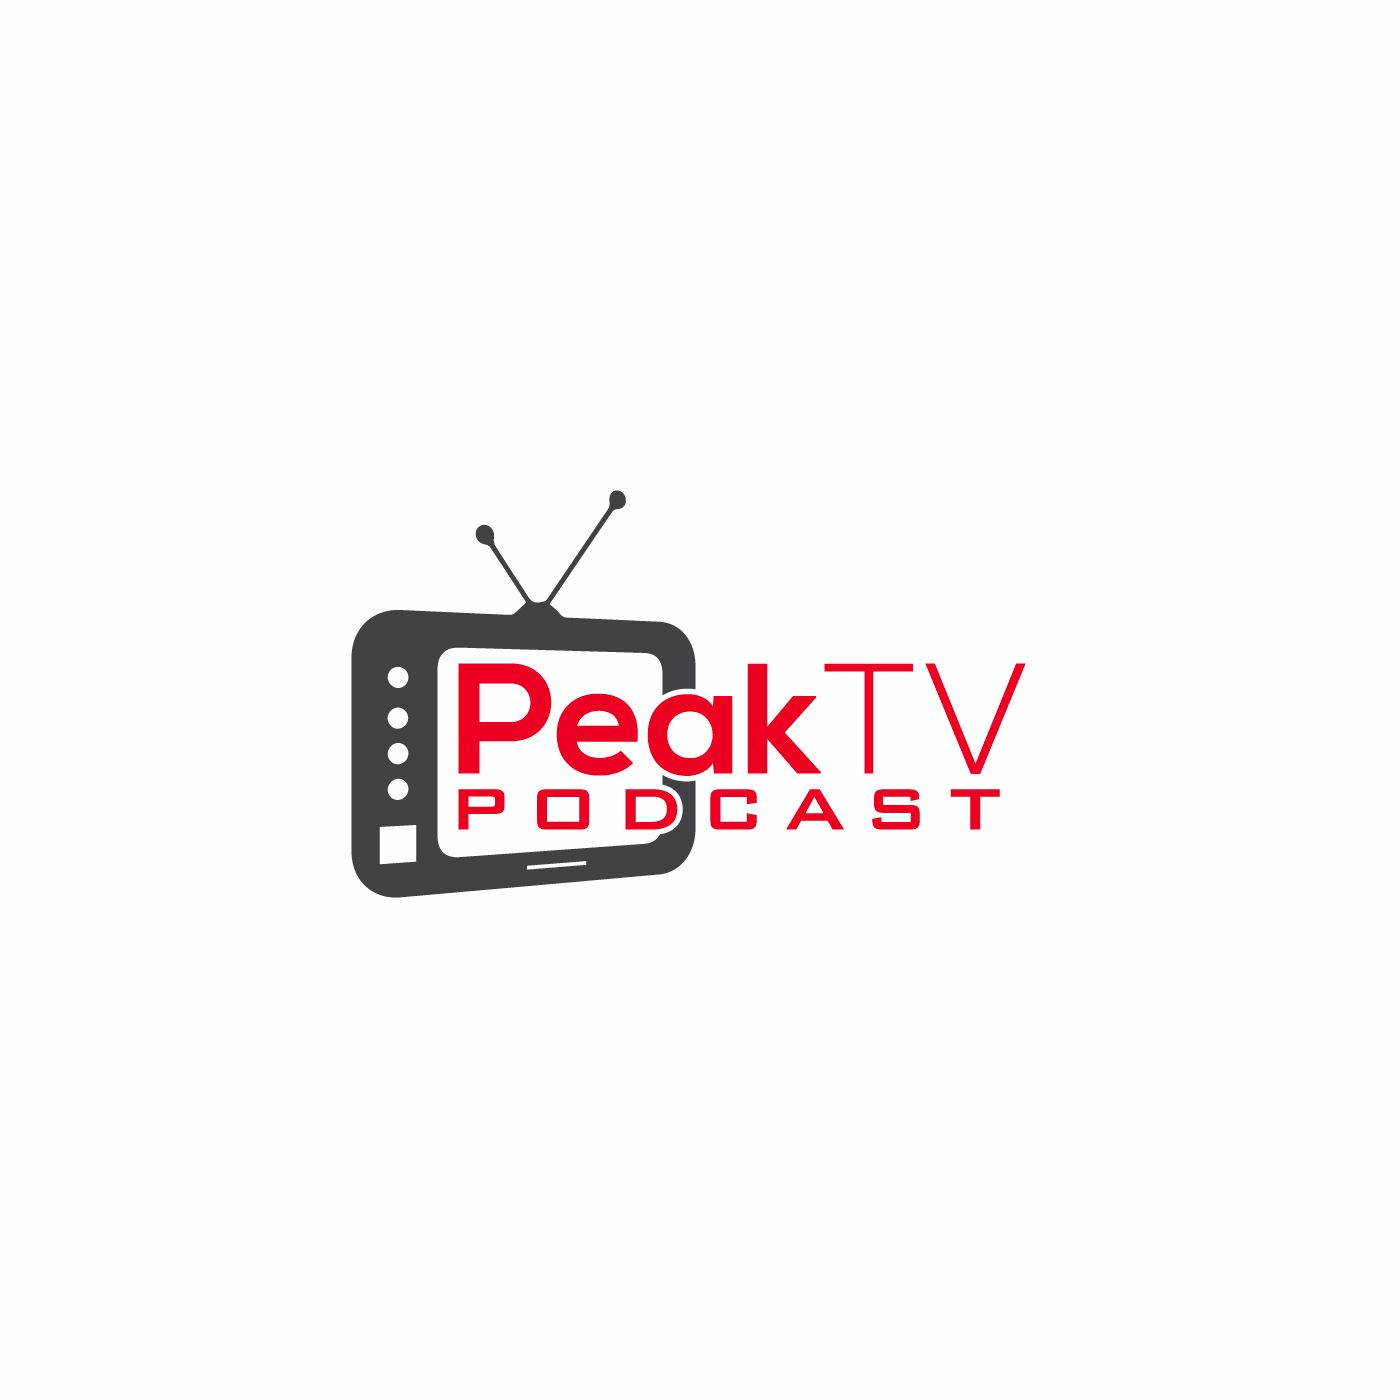 Peak TV Podcast